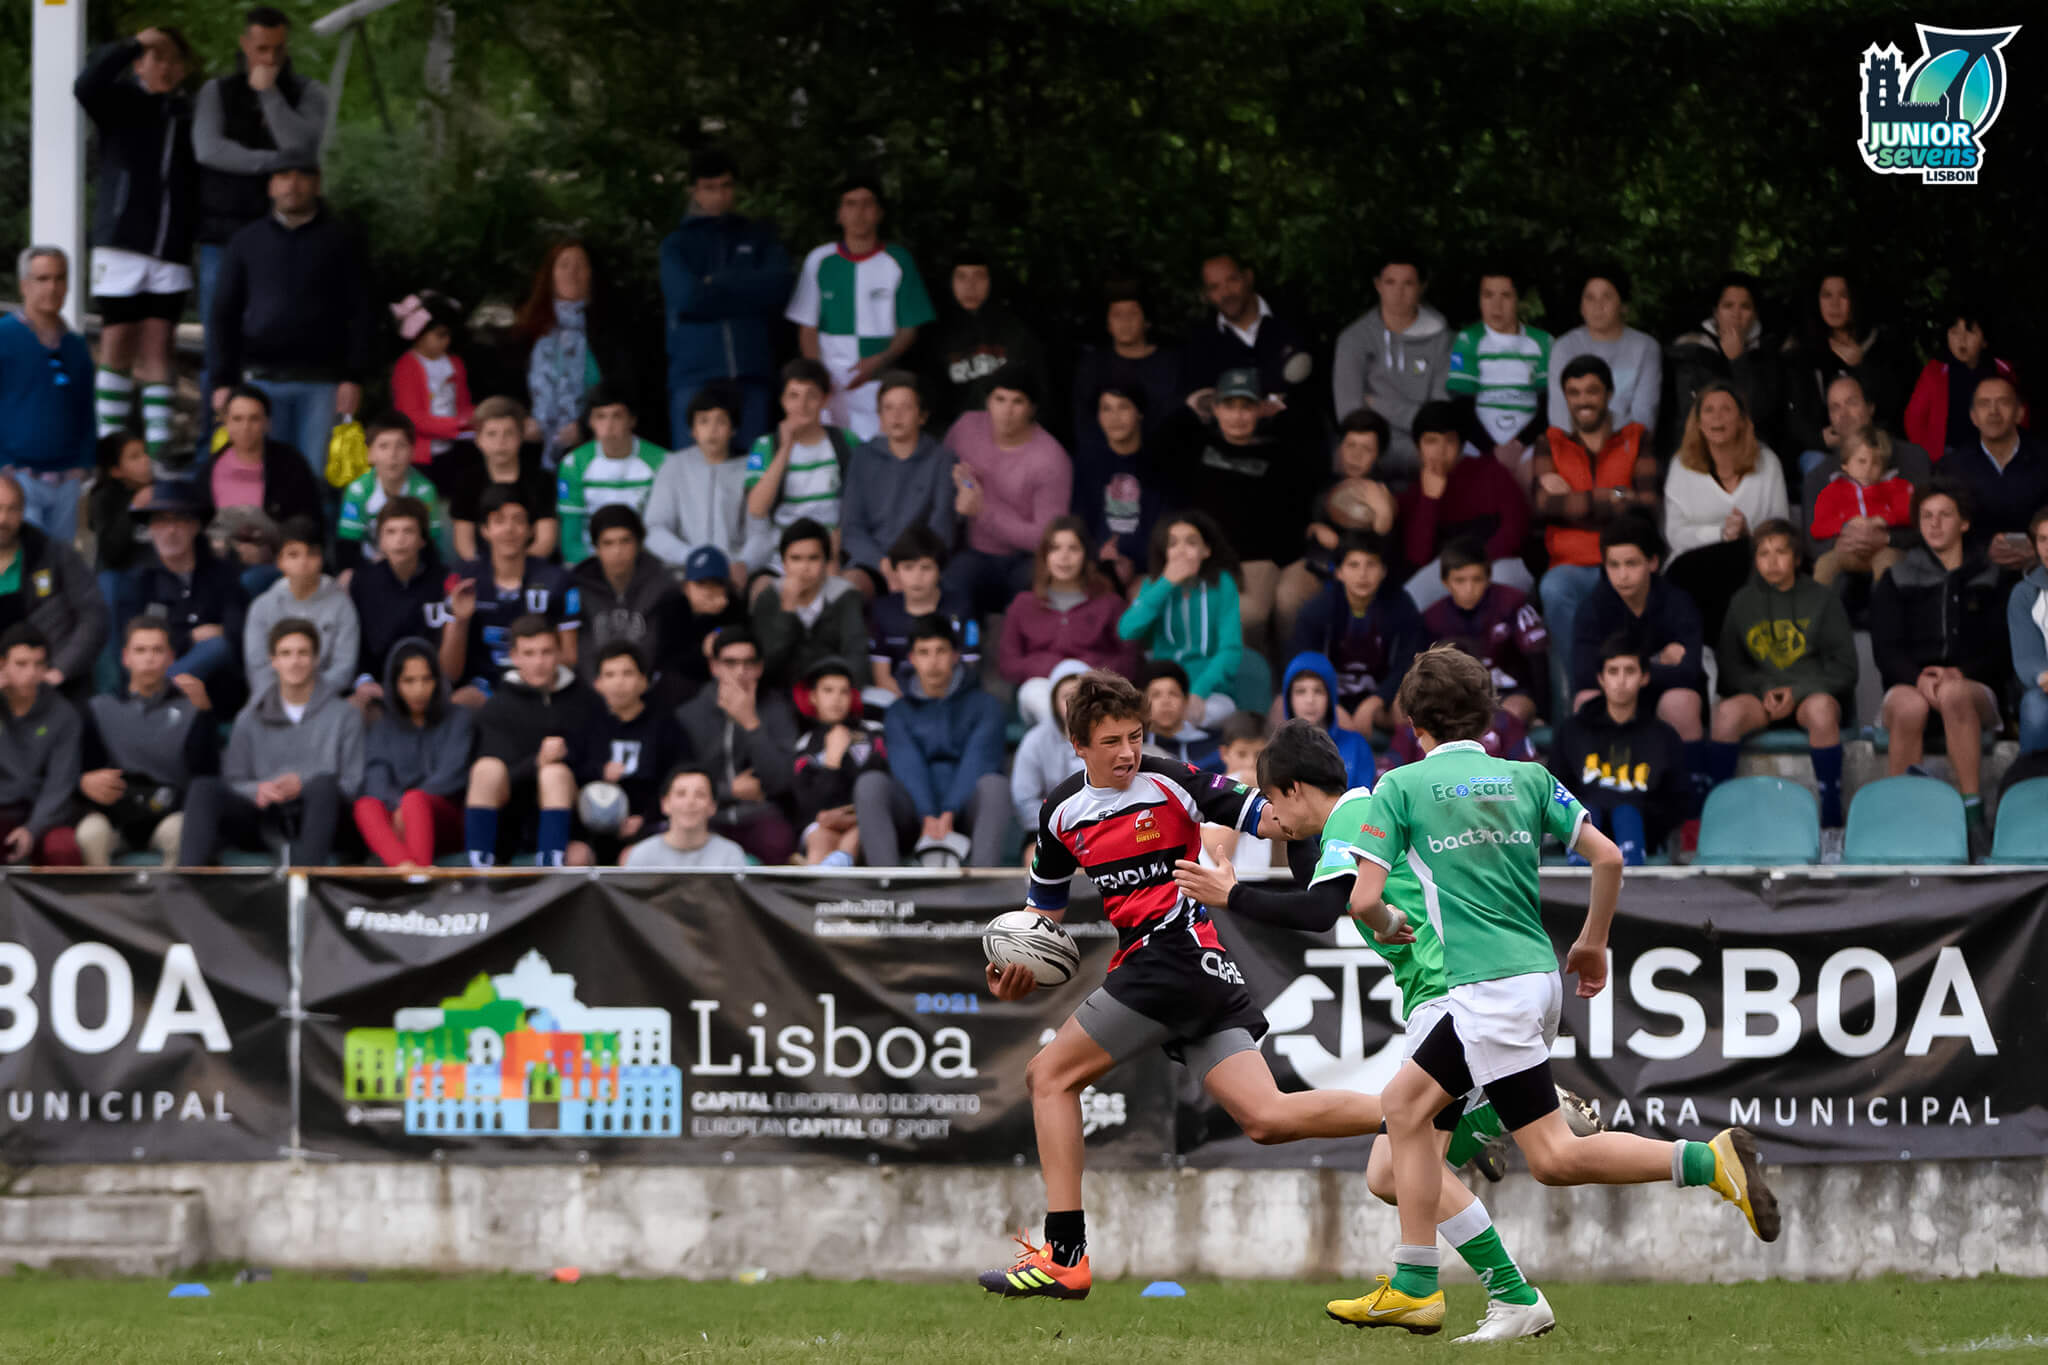 Lisbon-Junior7s-youth-rugby-sevens-Portugal-Spain-Italy-Sports-Ventures